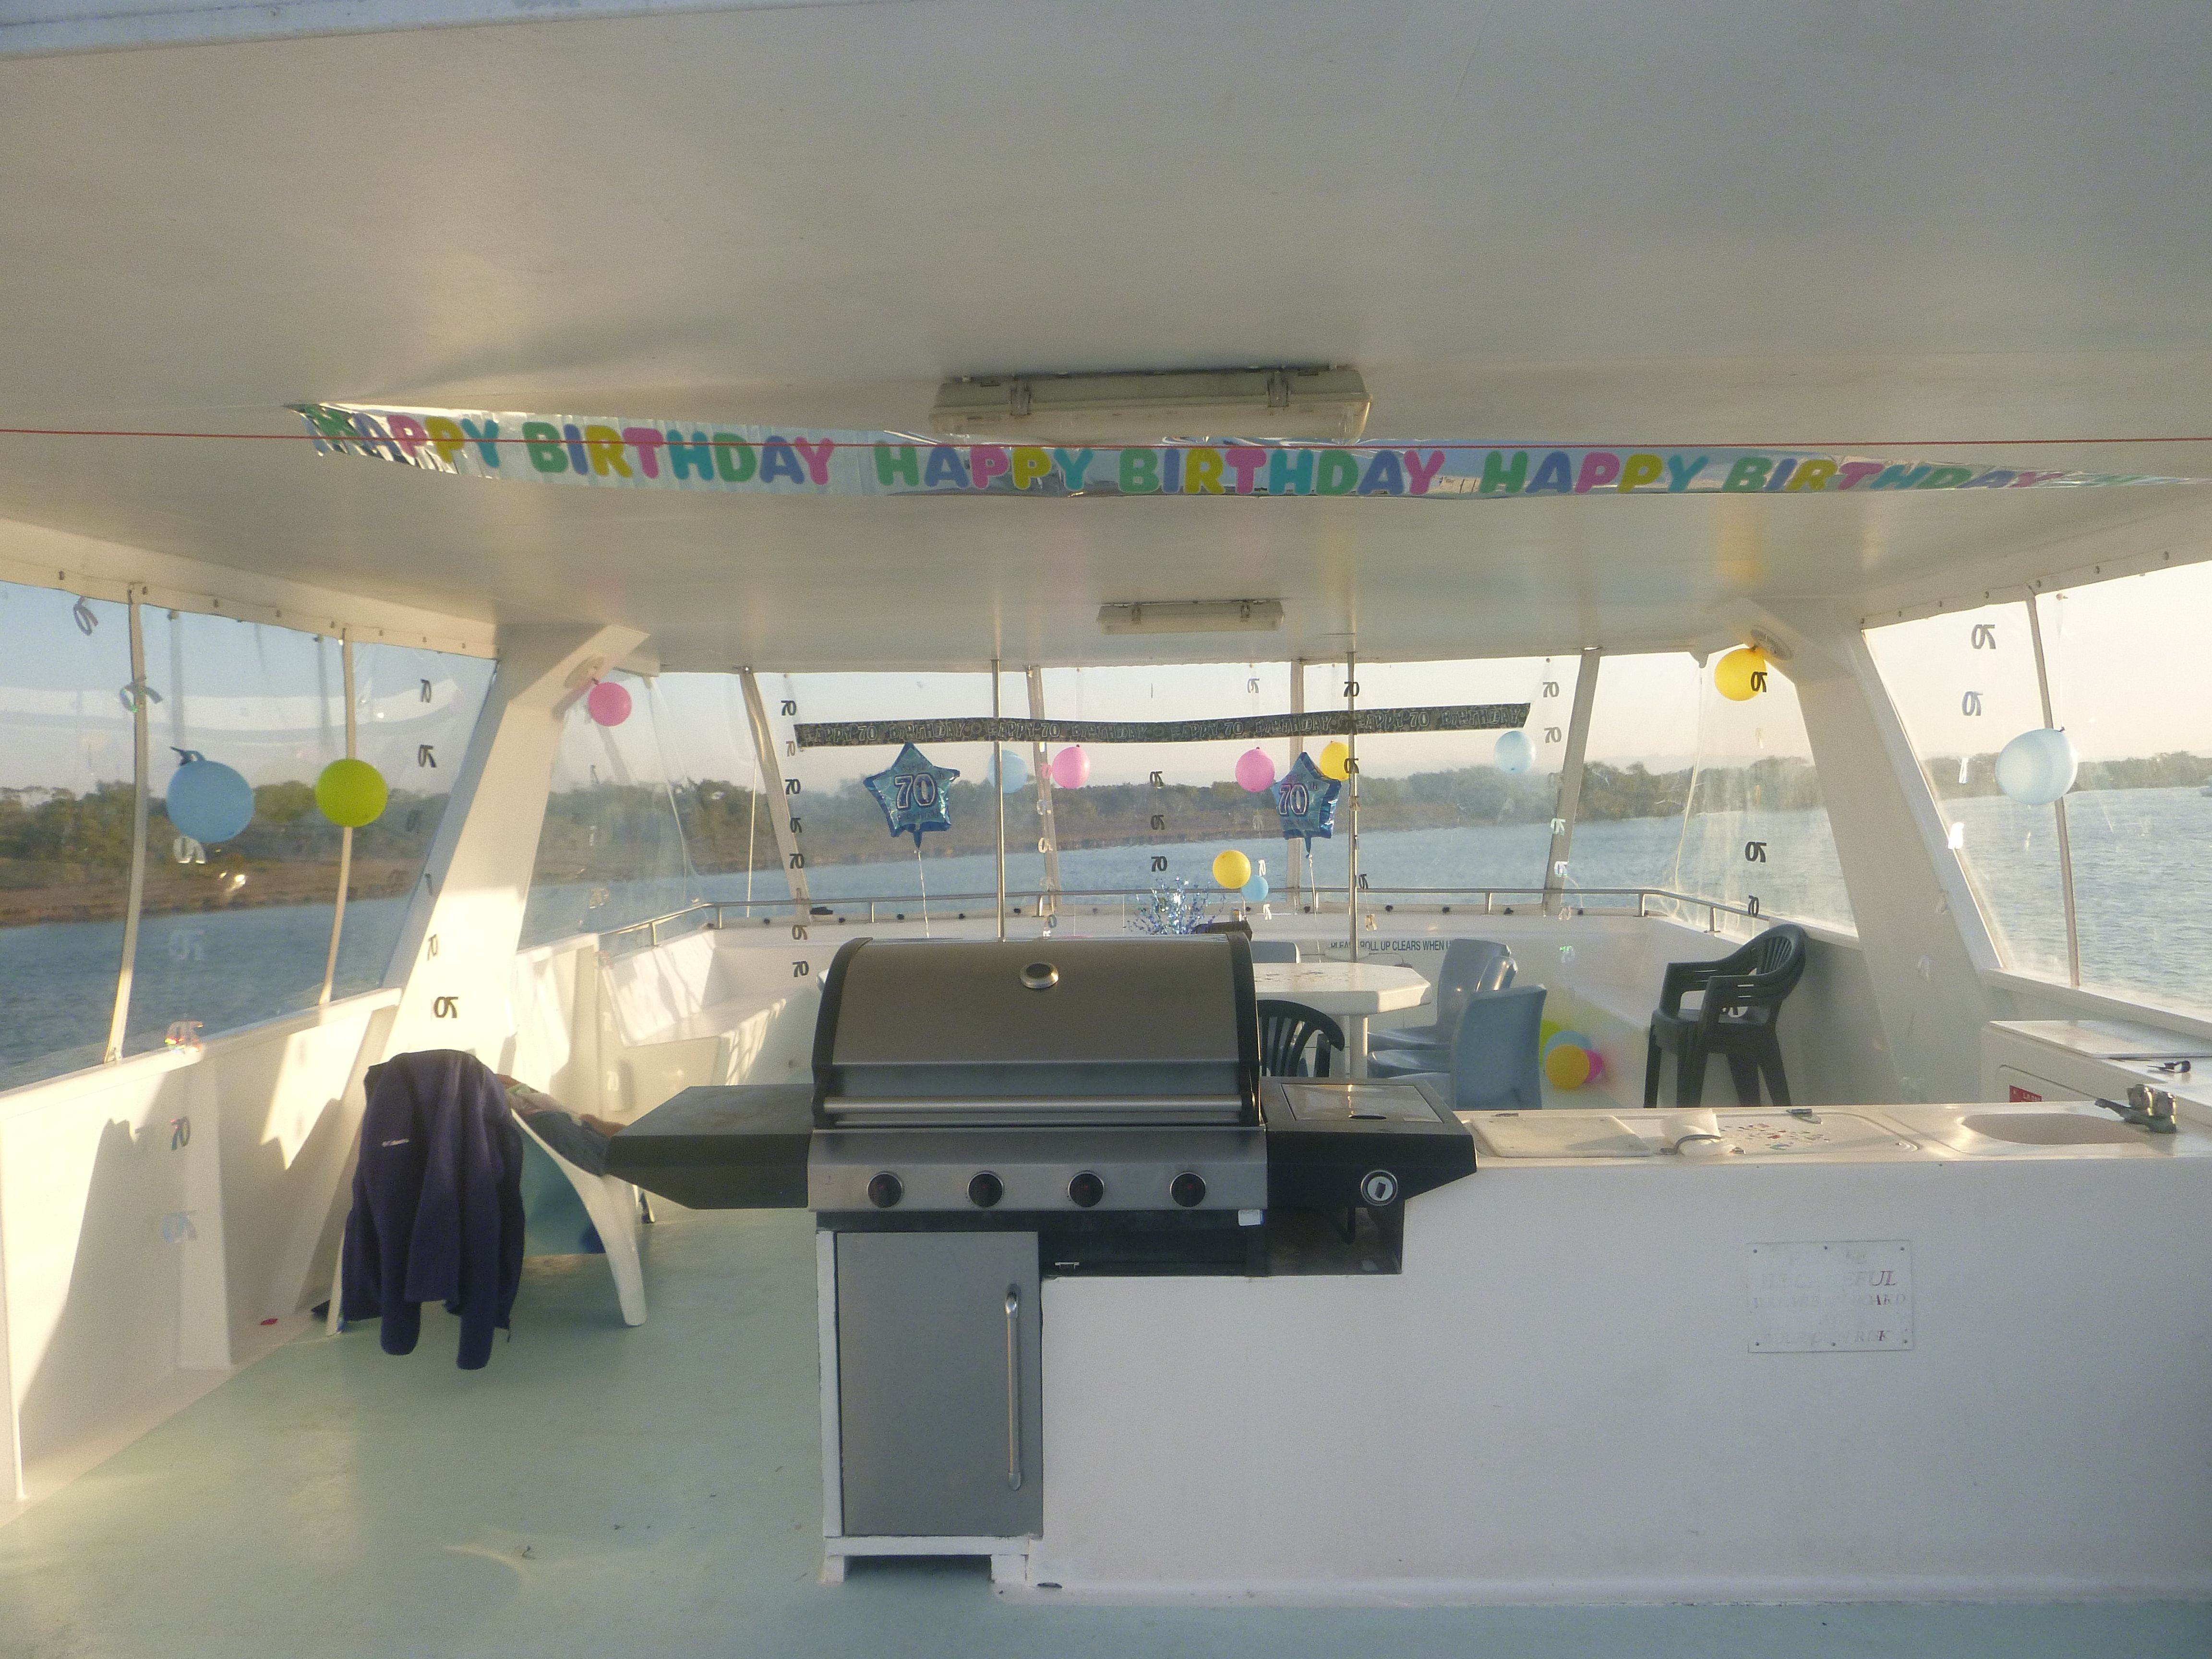 Looks like a great party took place on board Kea Lea! #birthday #party #houseboatrental #houseboathire #holiday #houseboat #kealea